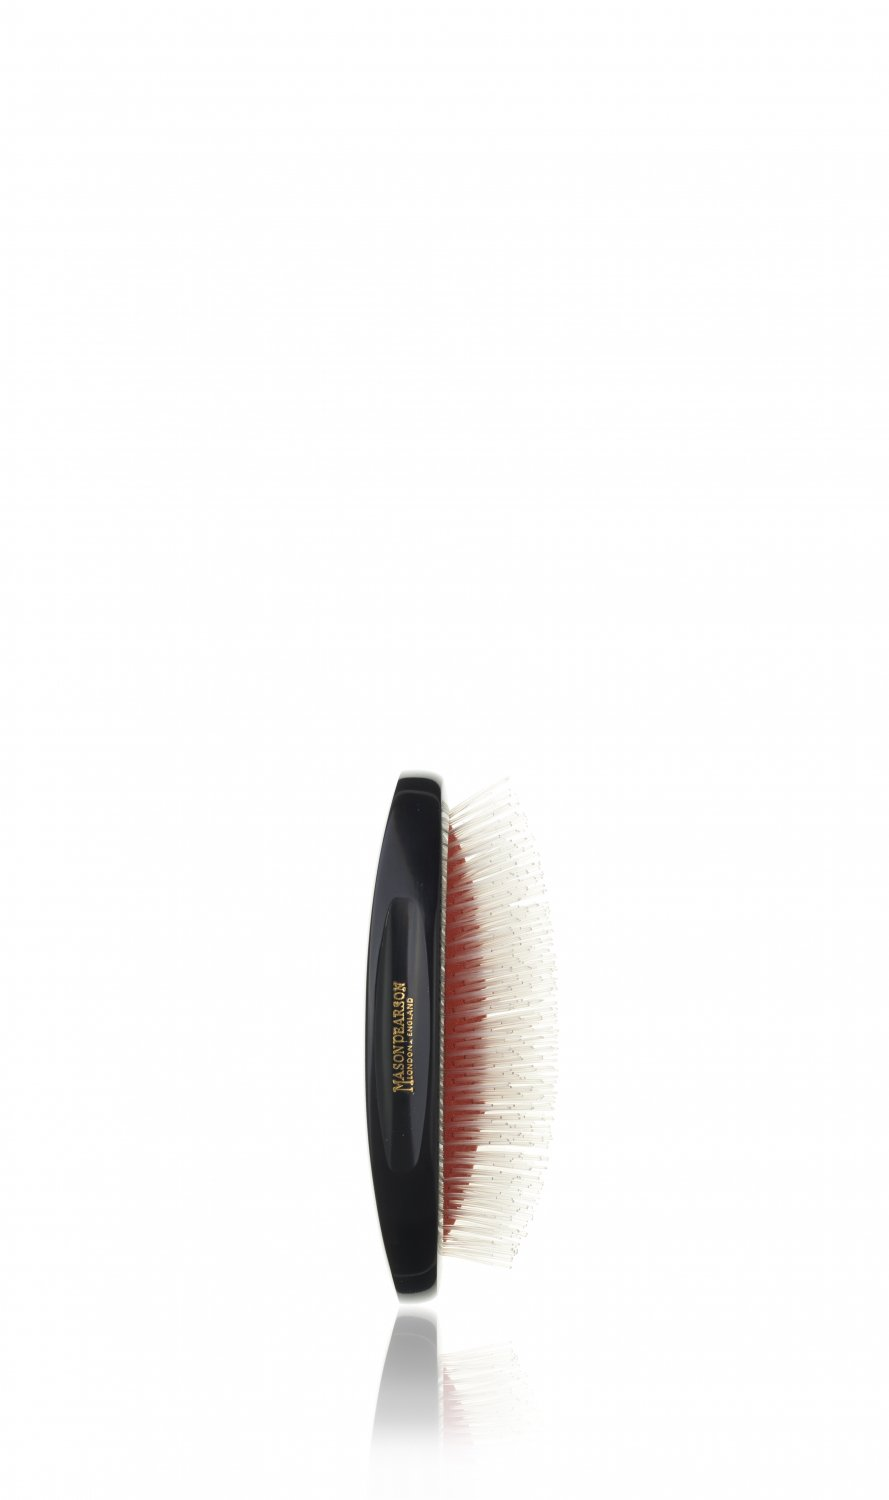 N2M Universal Military Hairbrush from Mason Pearson (Dark ruby)